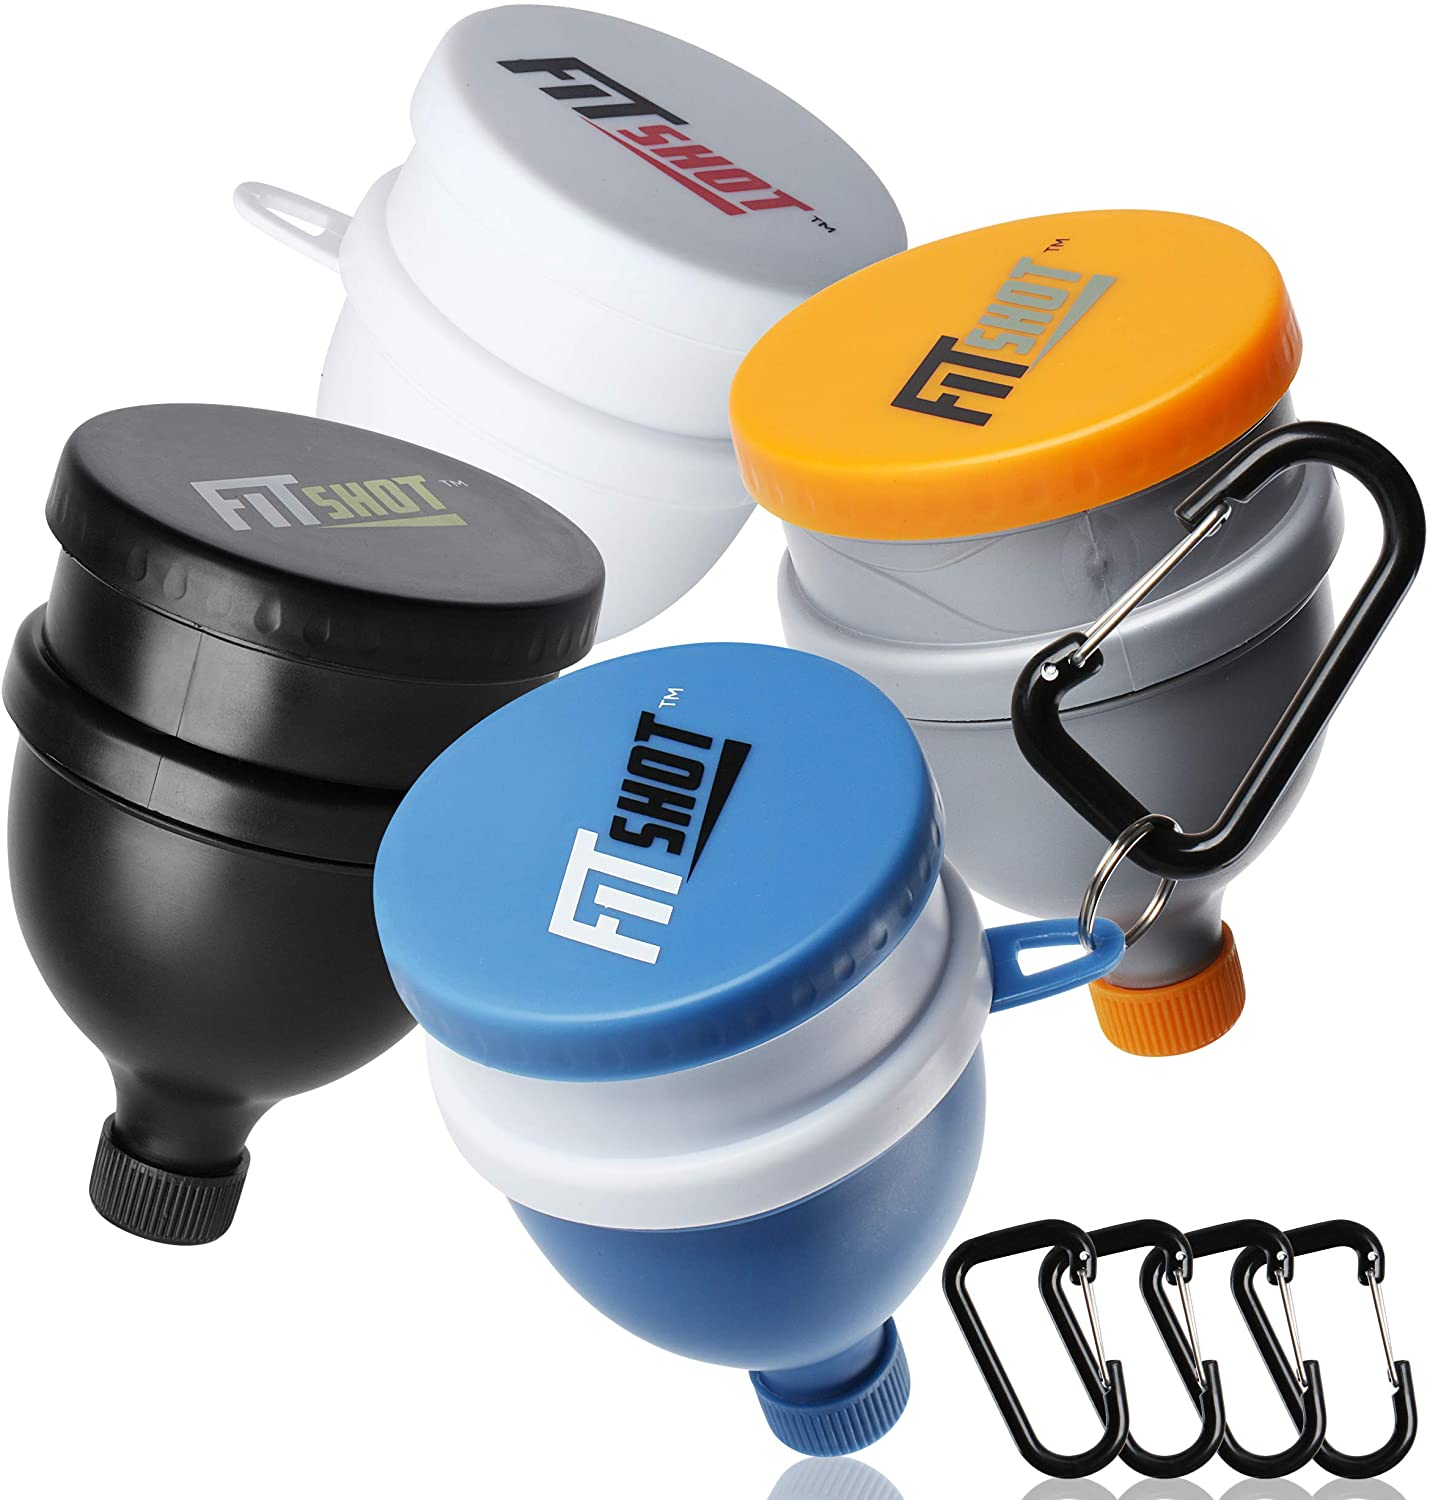 Fitshot Protein Powder Funnel– Supplement Funnel with Keychain 4pack, Water Bottle Funnels, BPA Free, 2 in 1,Portable 120ml with Pillbox ,Pre Workout Protein Powder Container to go